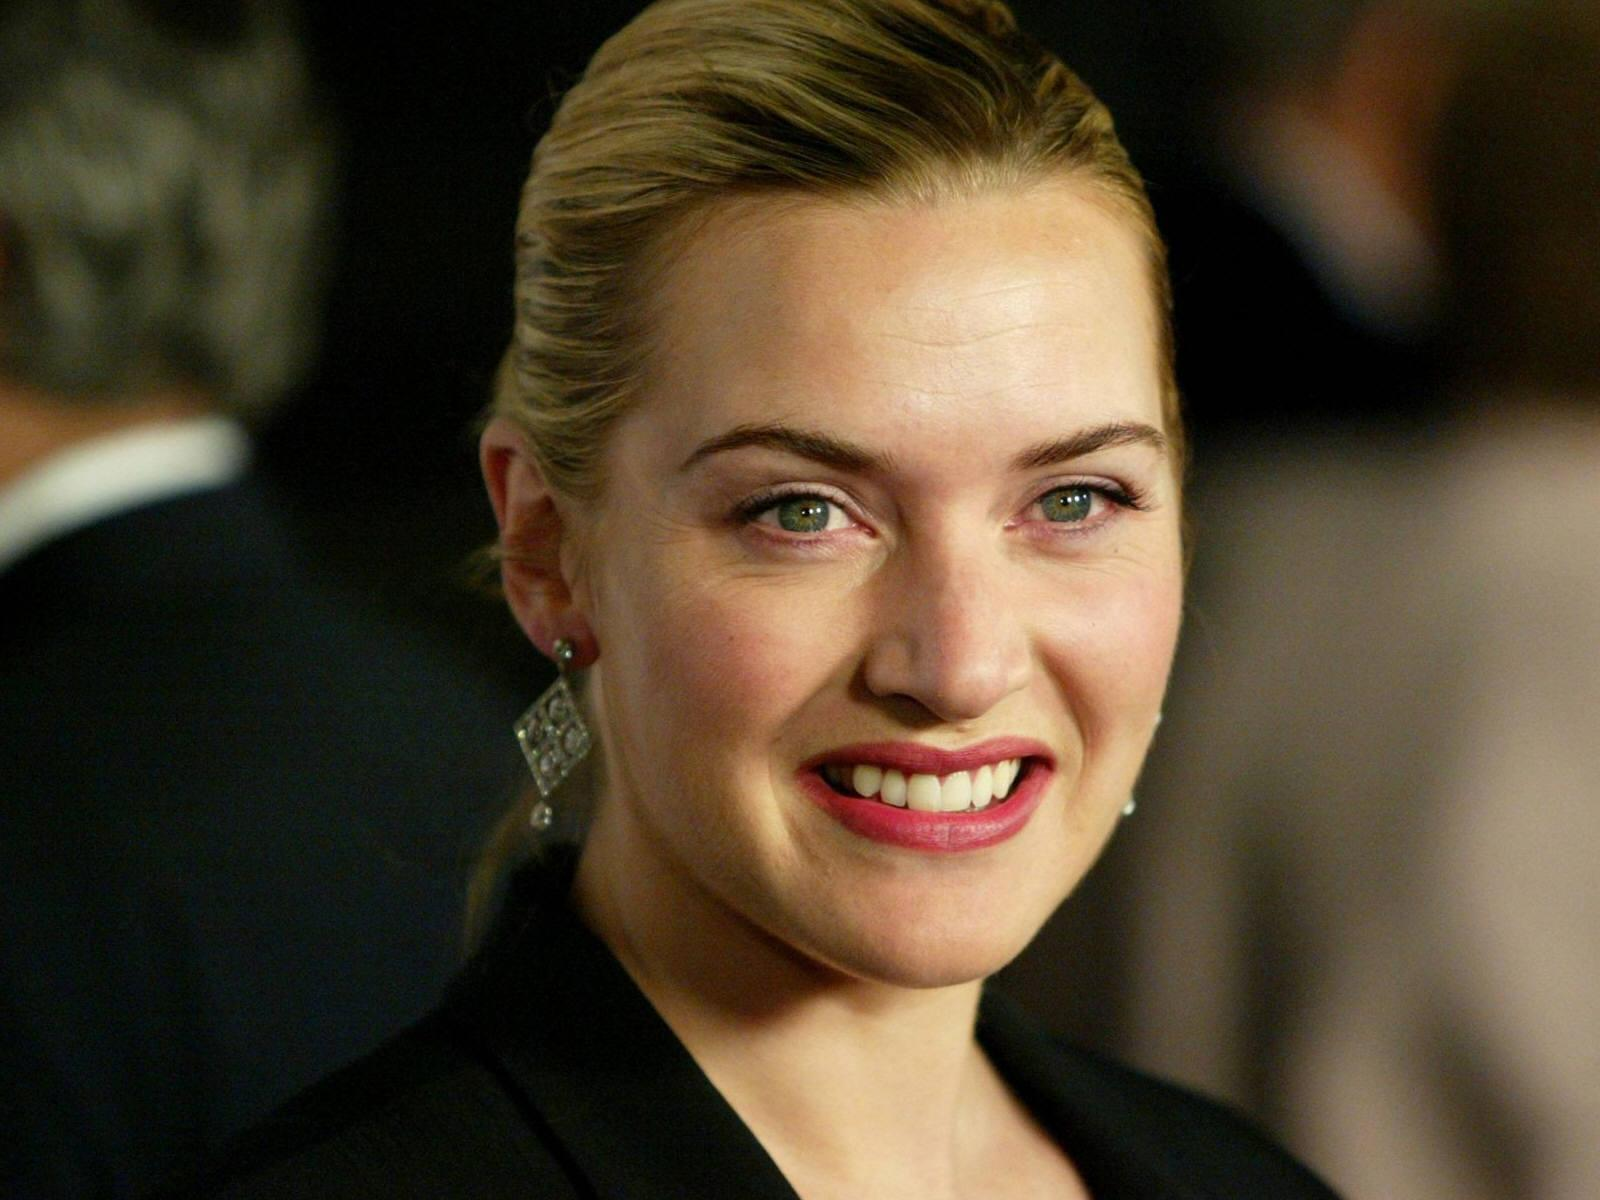 kate winslet high resolution wallpapers - Kate Winslet High Quality Wallpapers HD Wallpapers